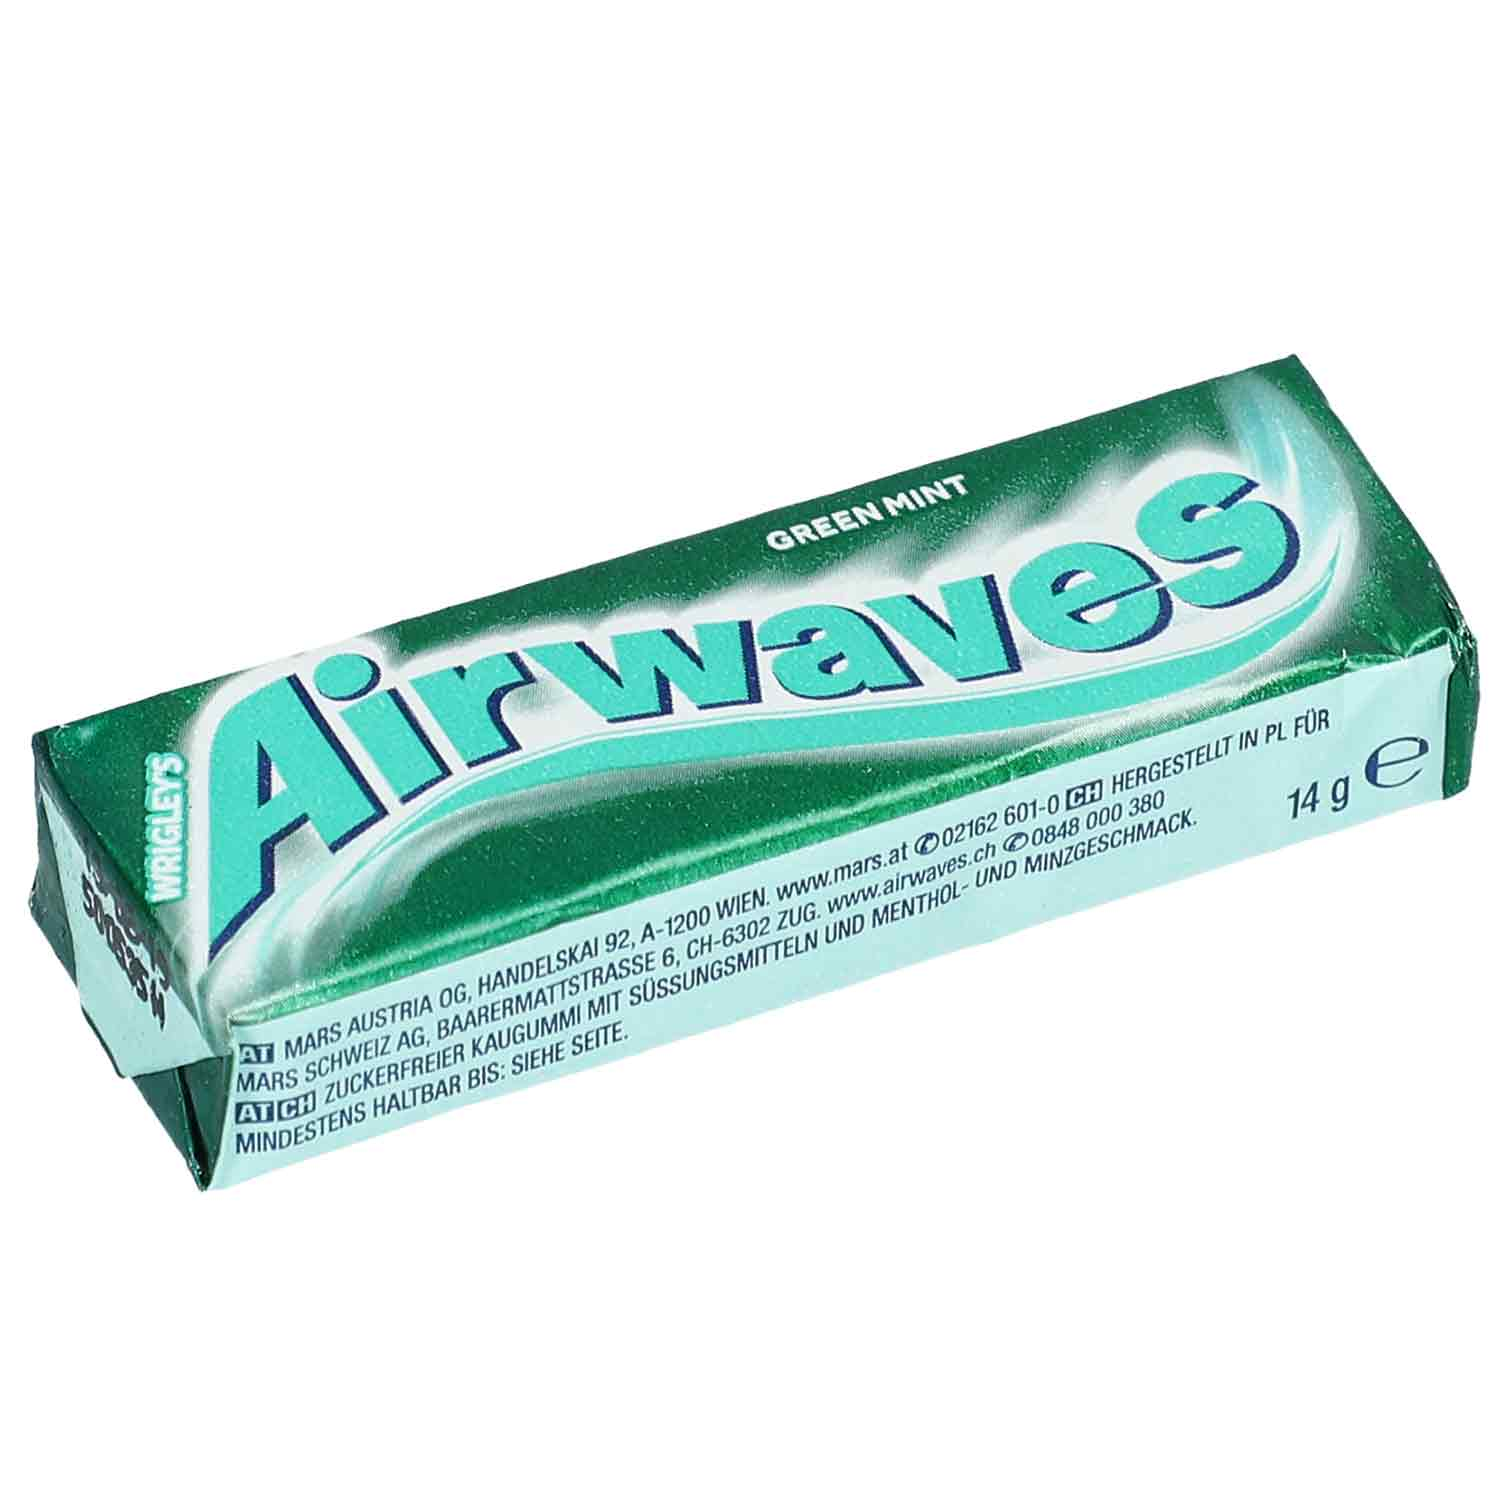 Airwaves Green Mint 10er Online Kaufen Im World Of Sweets Shop